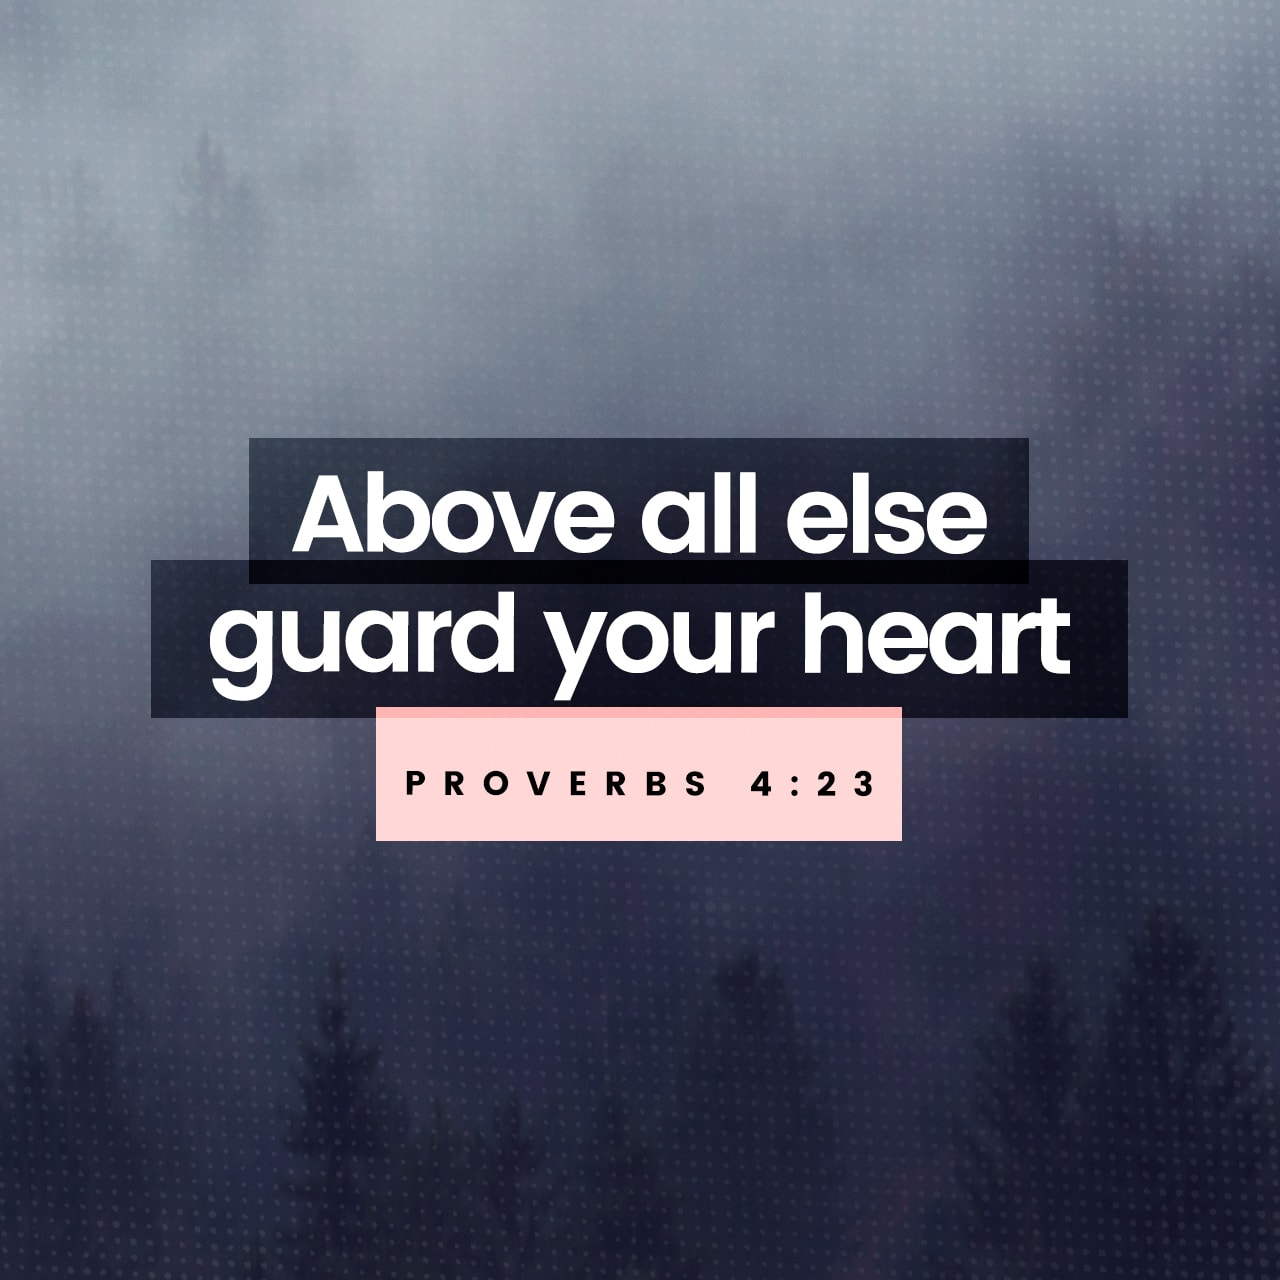 Image result for image of Proverbs 4:23